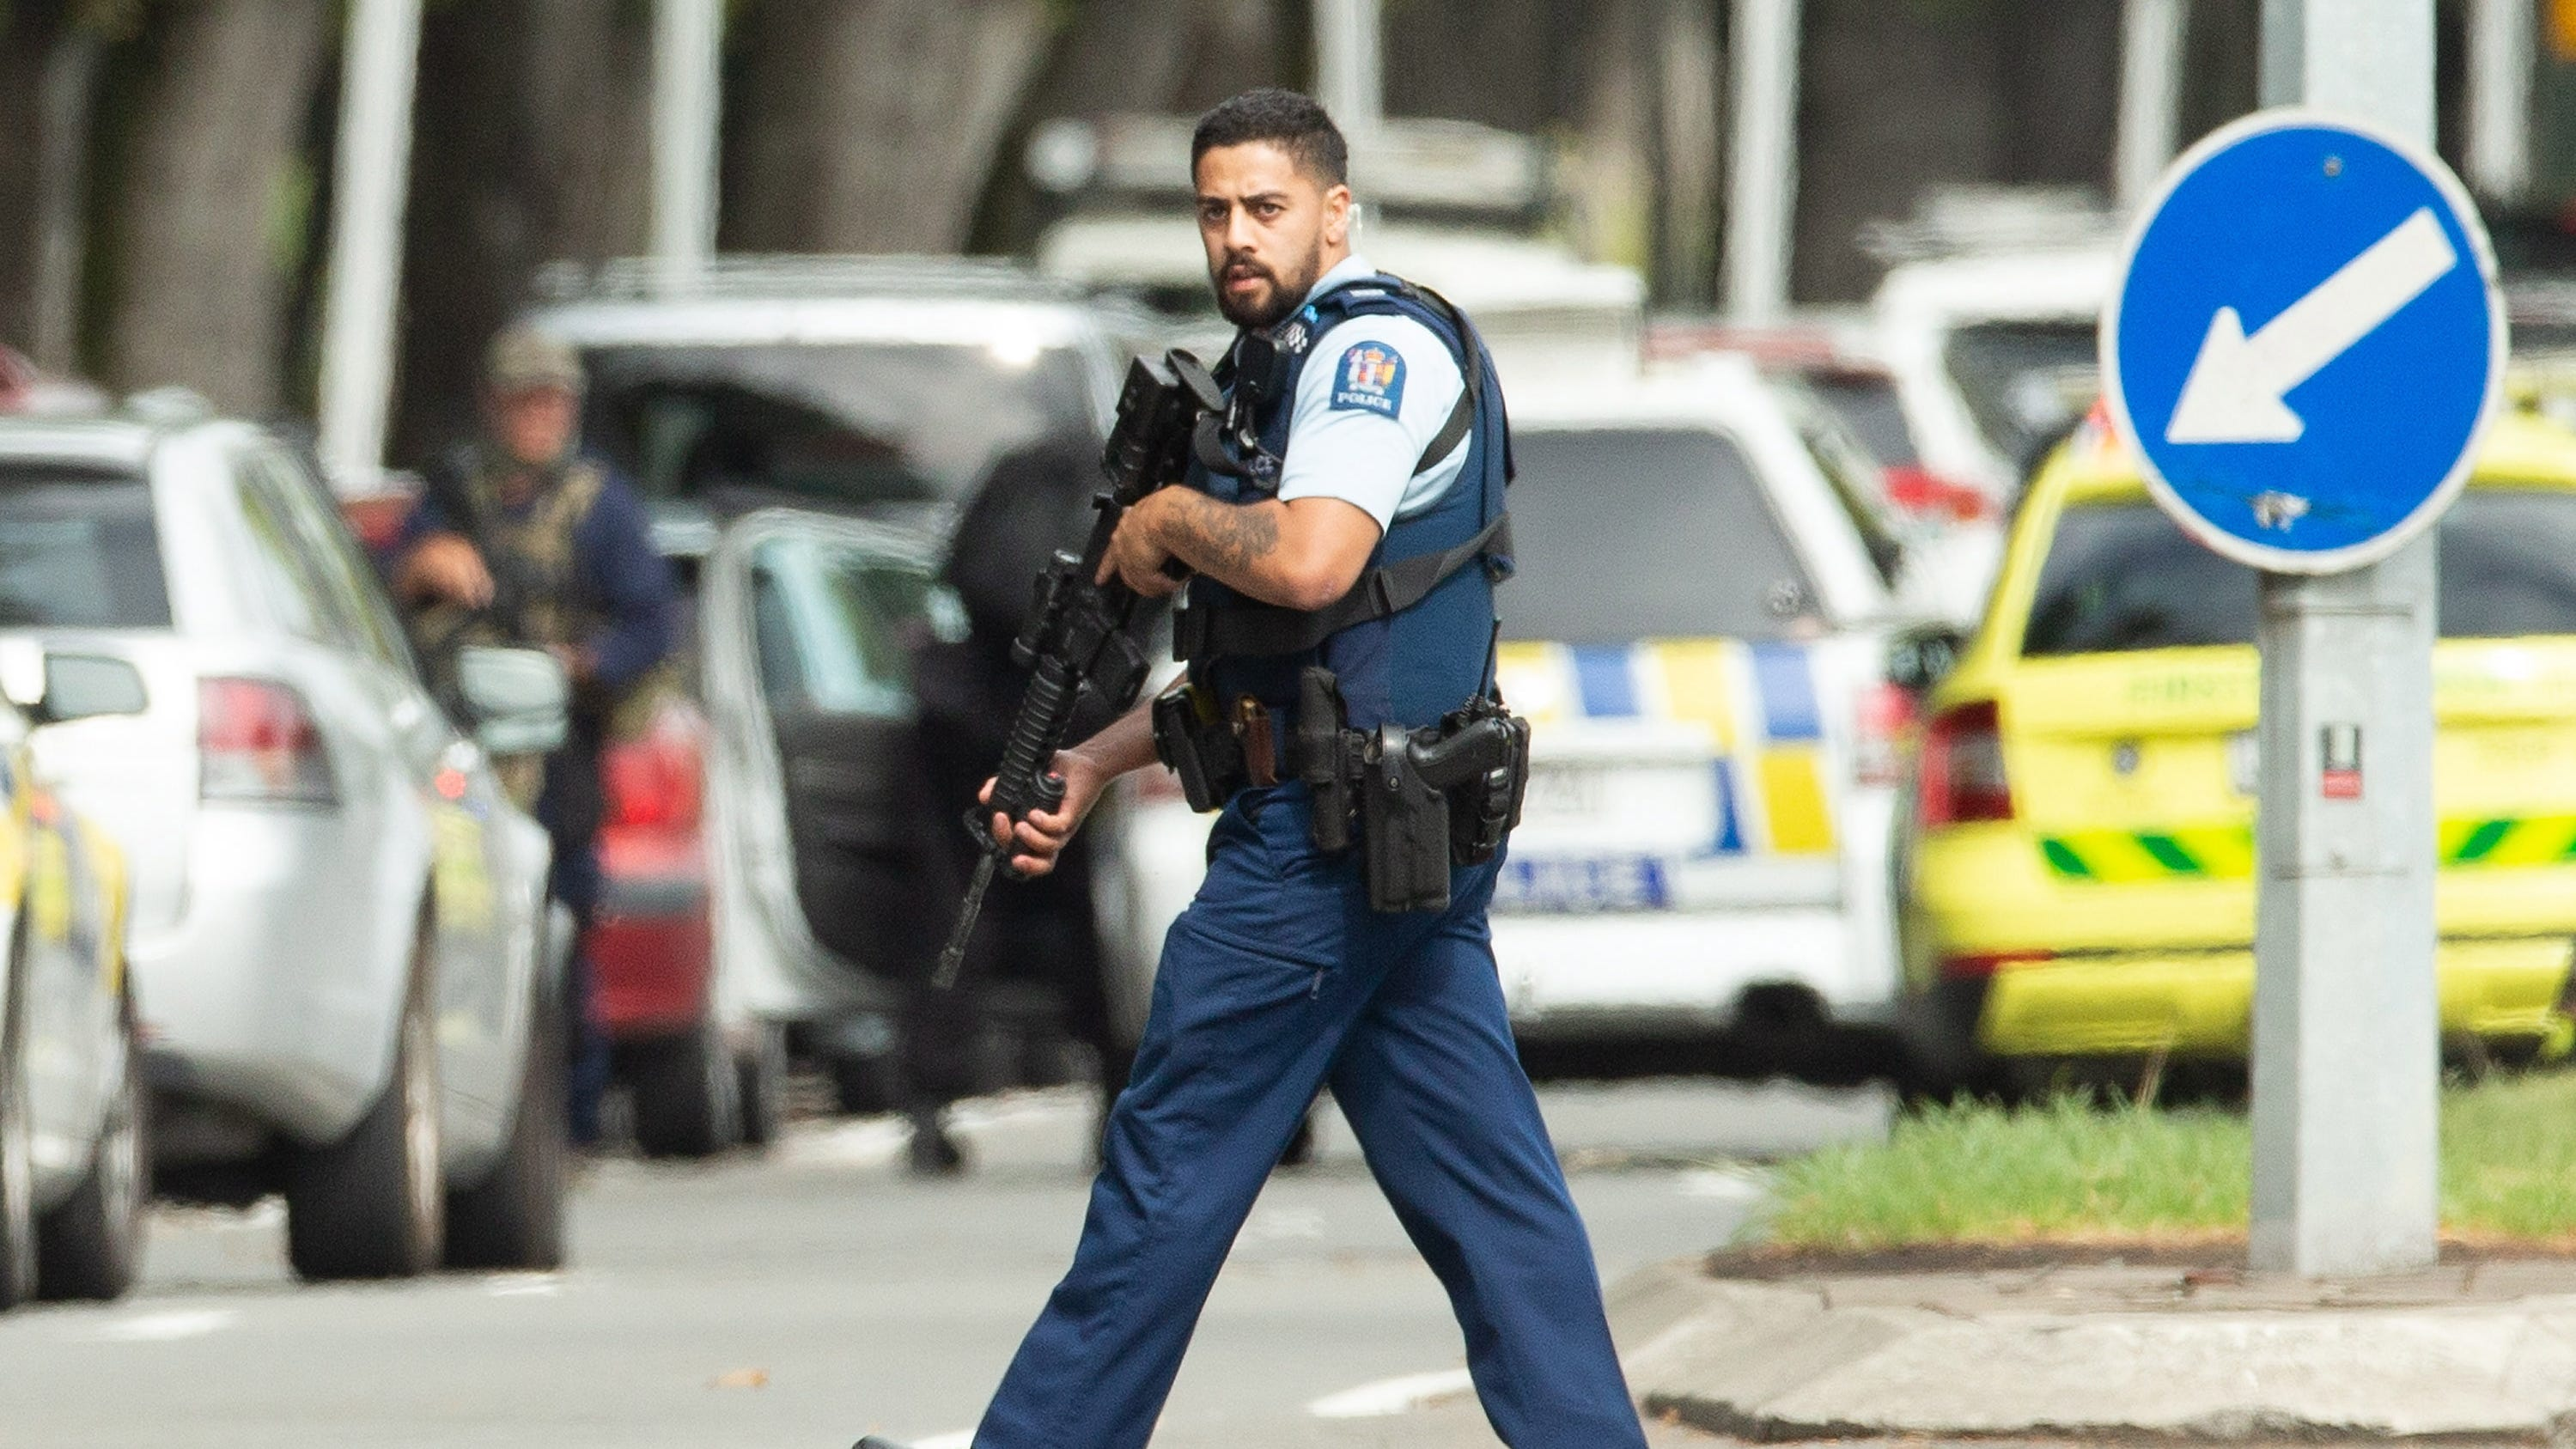 New Zealand Shooter Live Stream Image: New Zealand Terror Attack: Don't Read Manifestos Of Mass